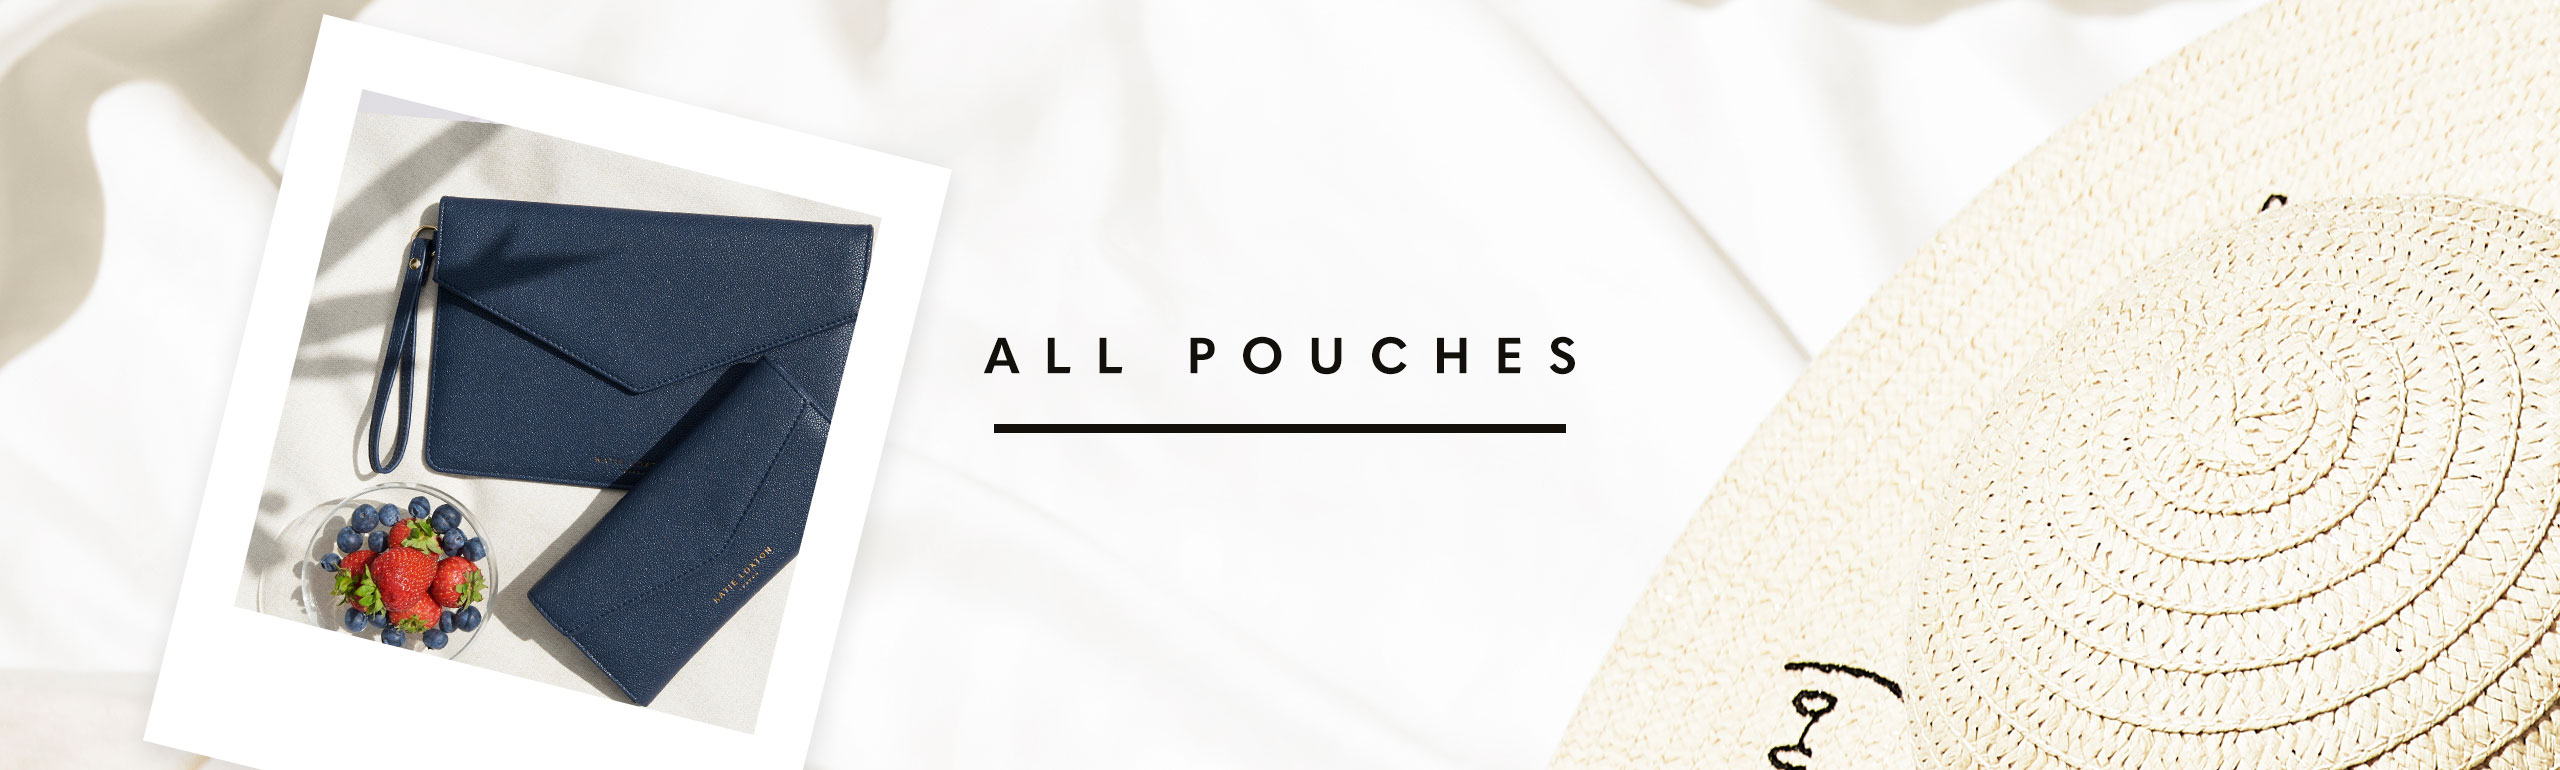 All Pouches